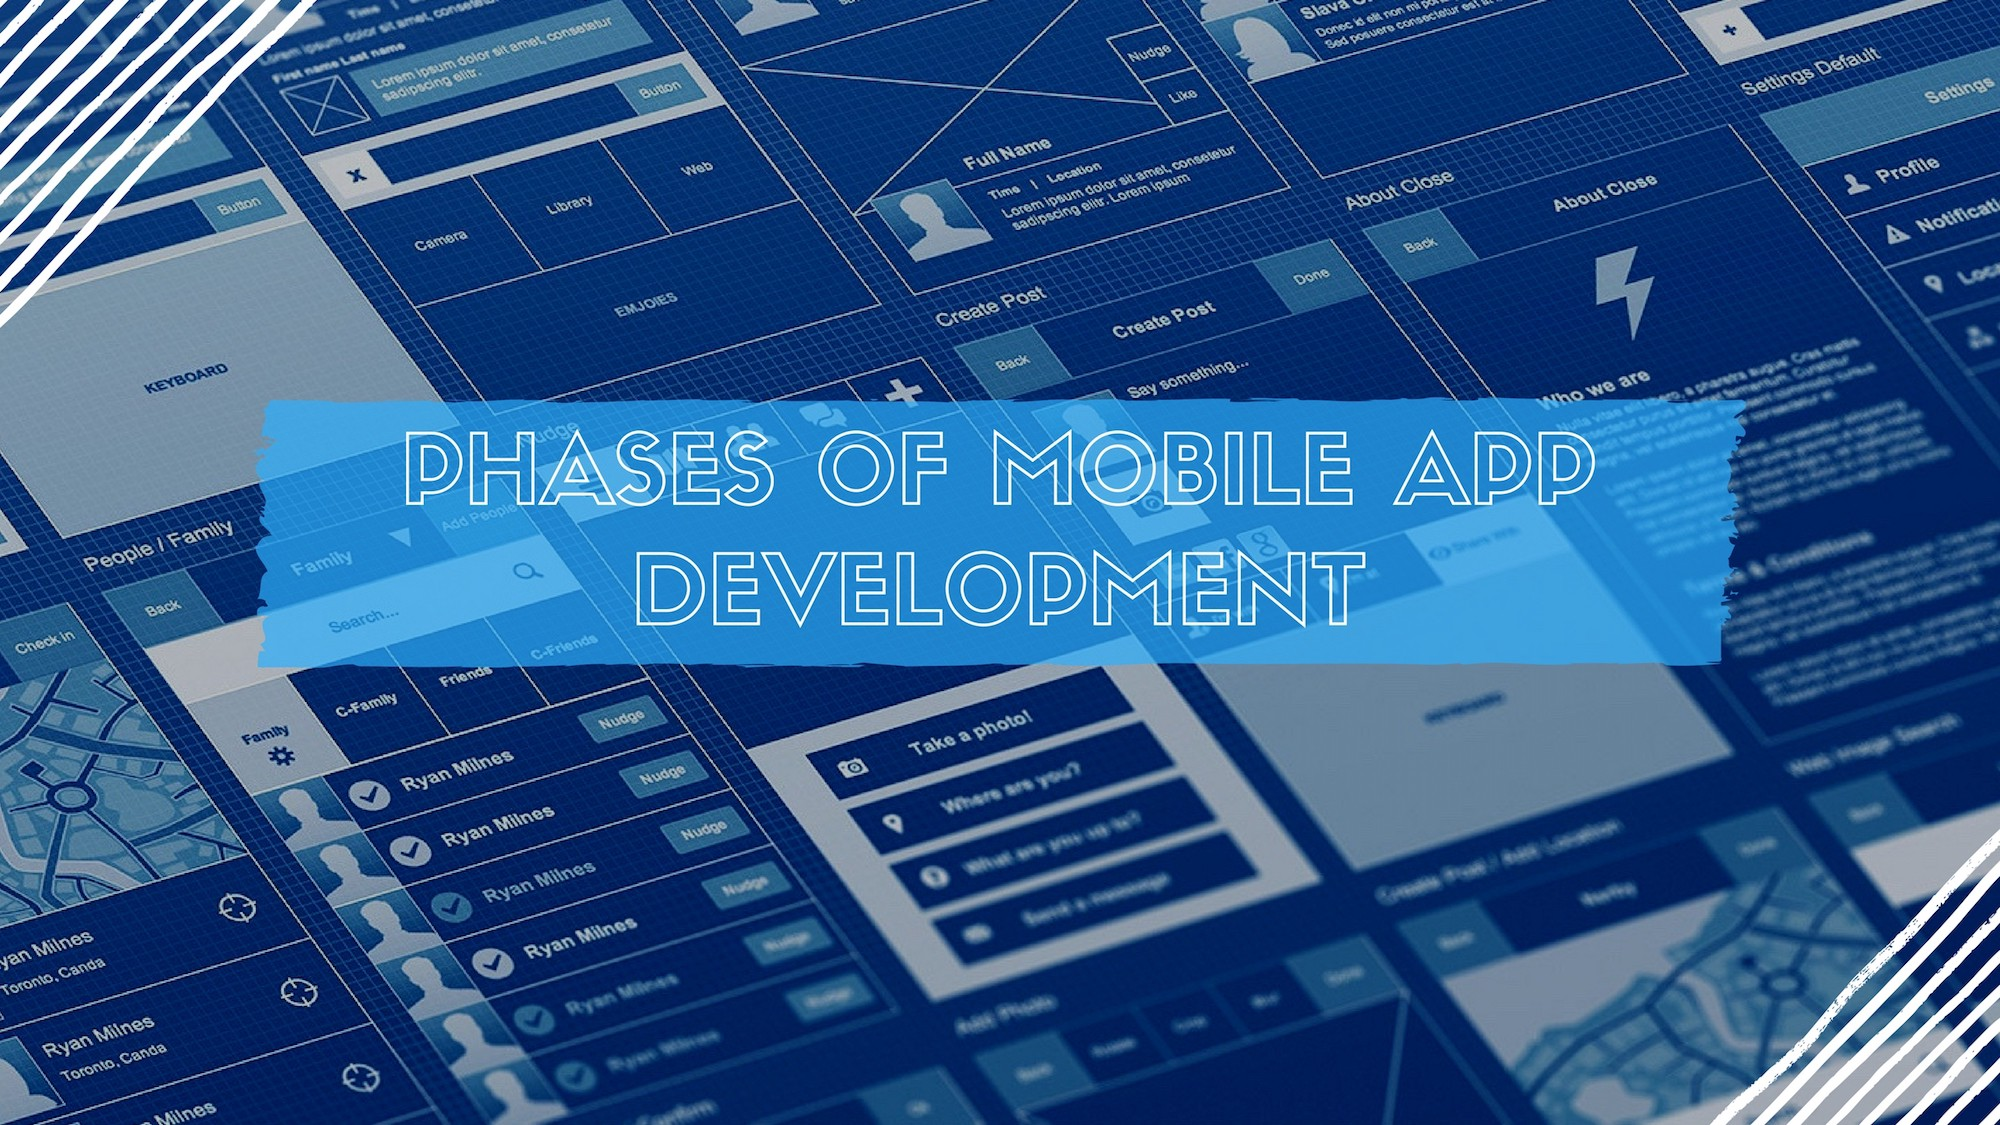 What Are The Various Phases Of Mobile App Development?